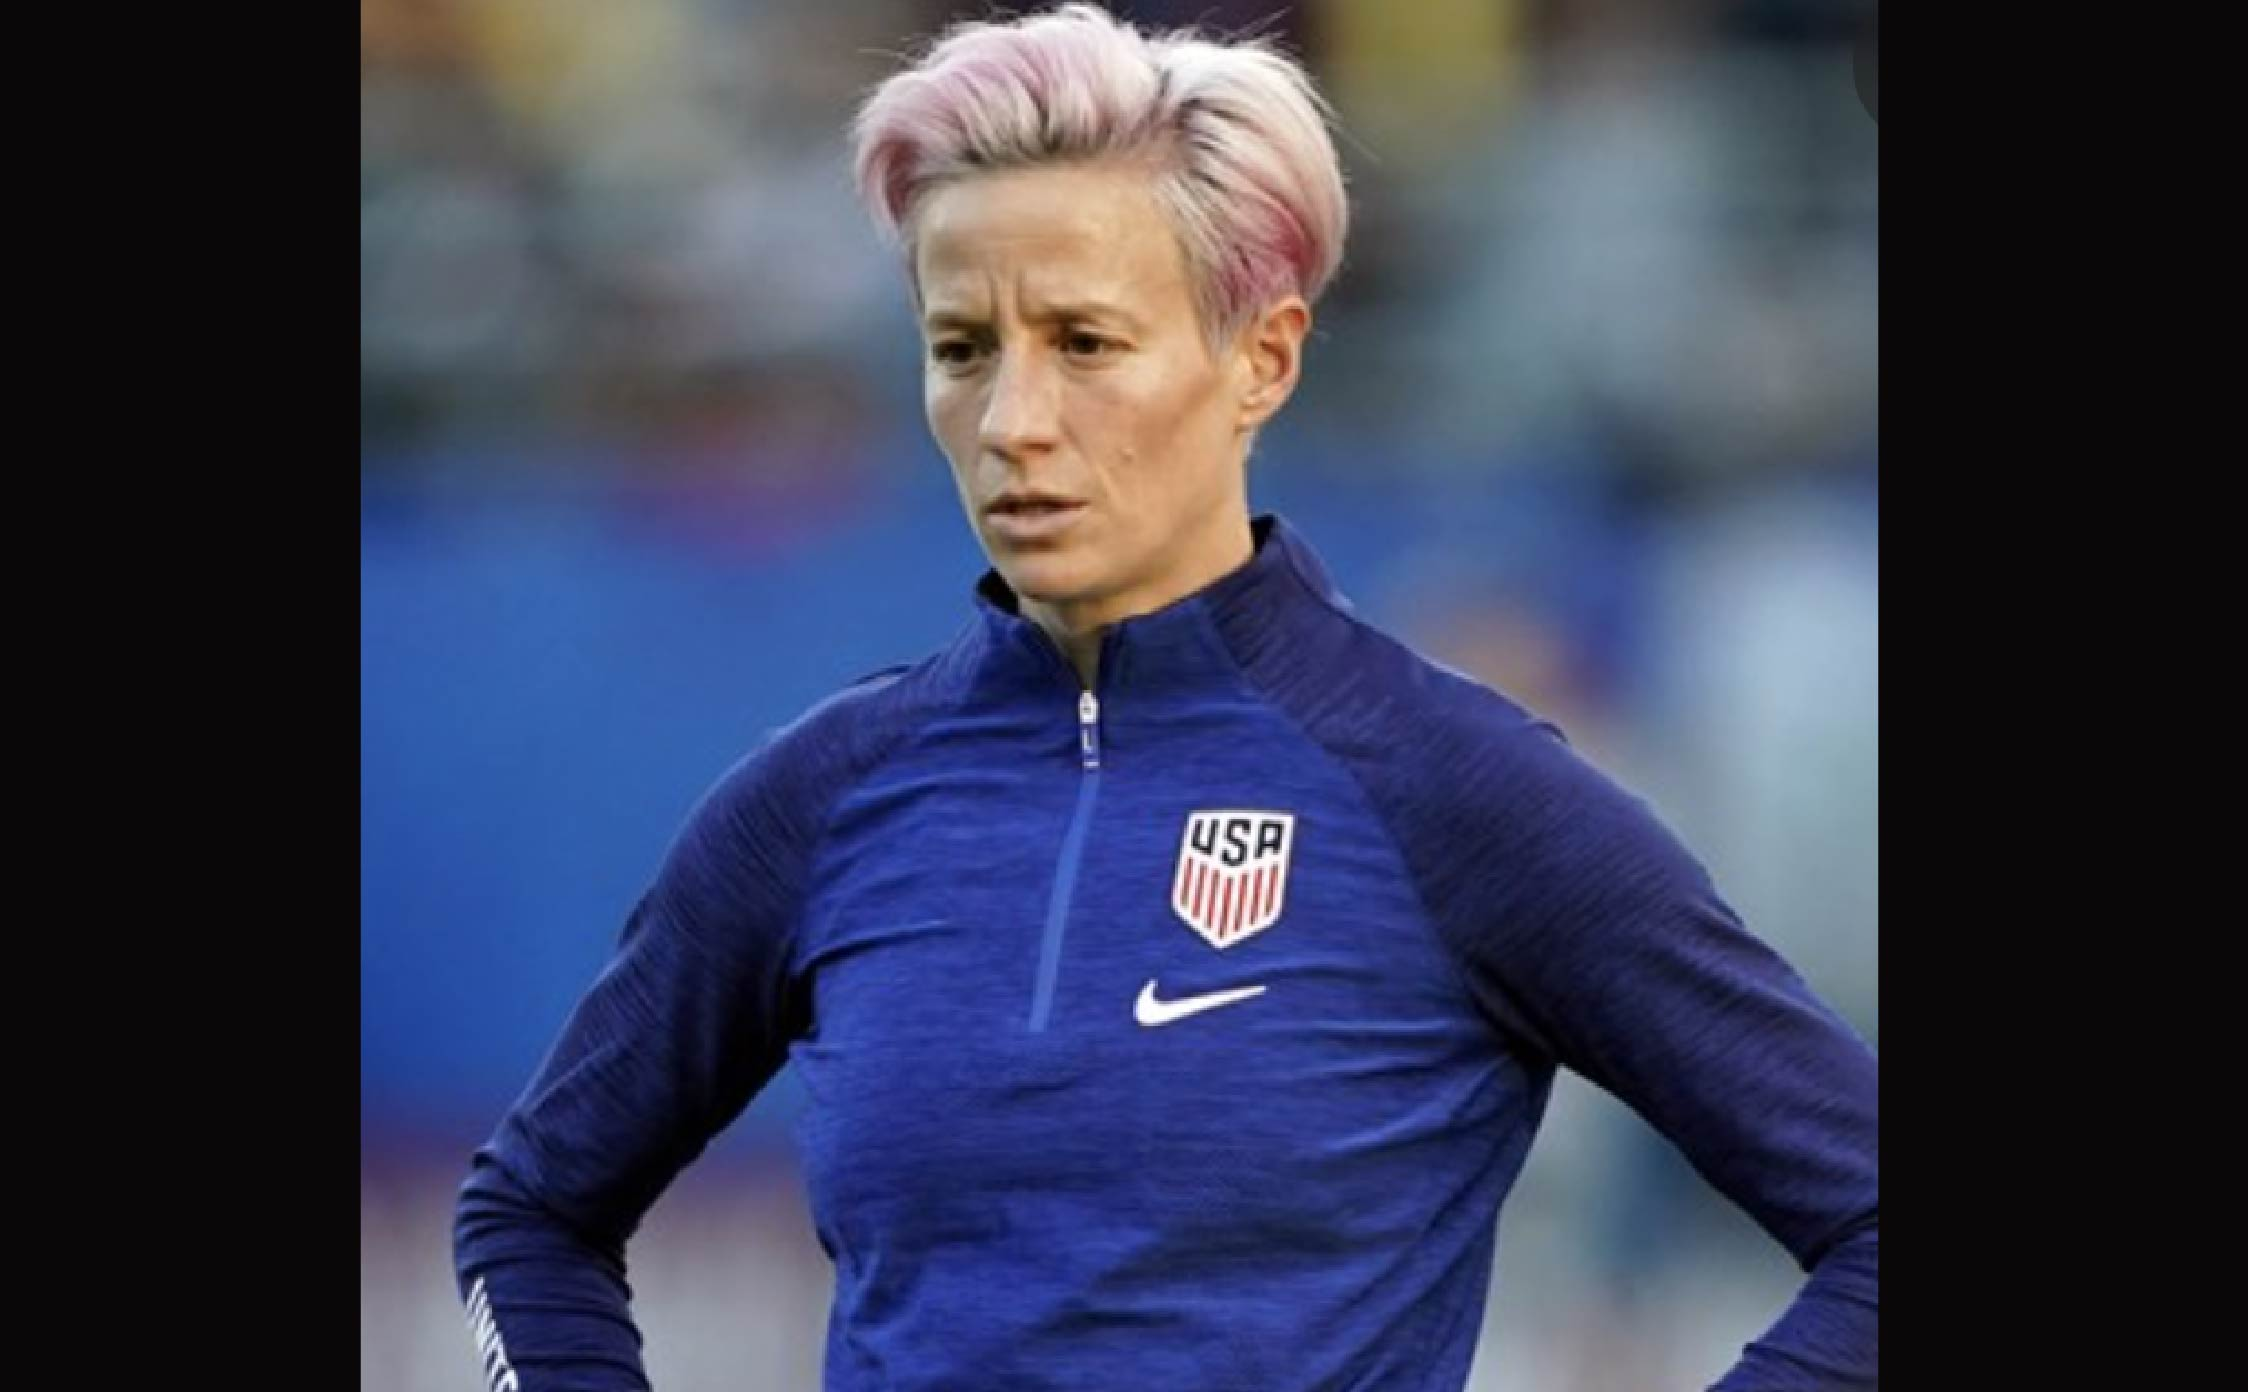 Karma Stomps Megan Rapinoe and US Soccer Team Right After They Took Knee at Olympic Opener